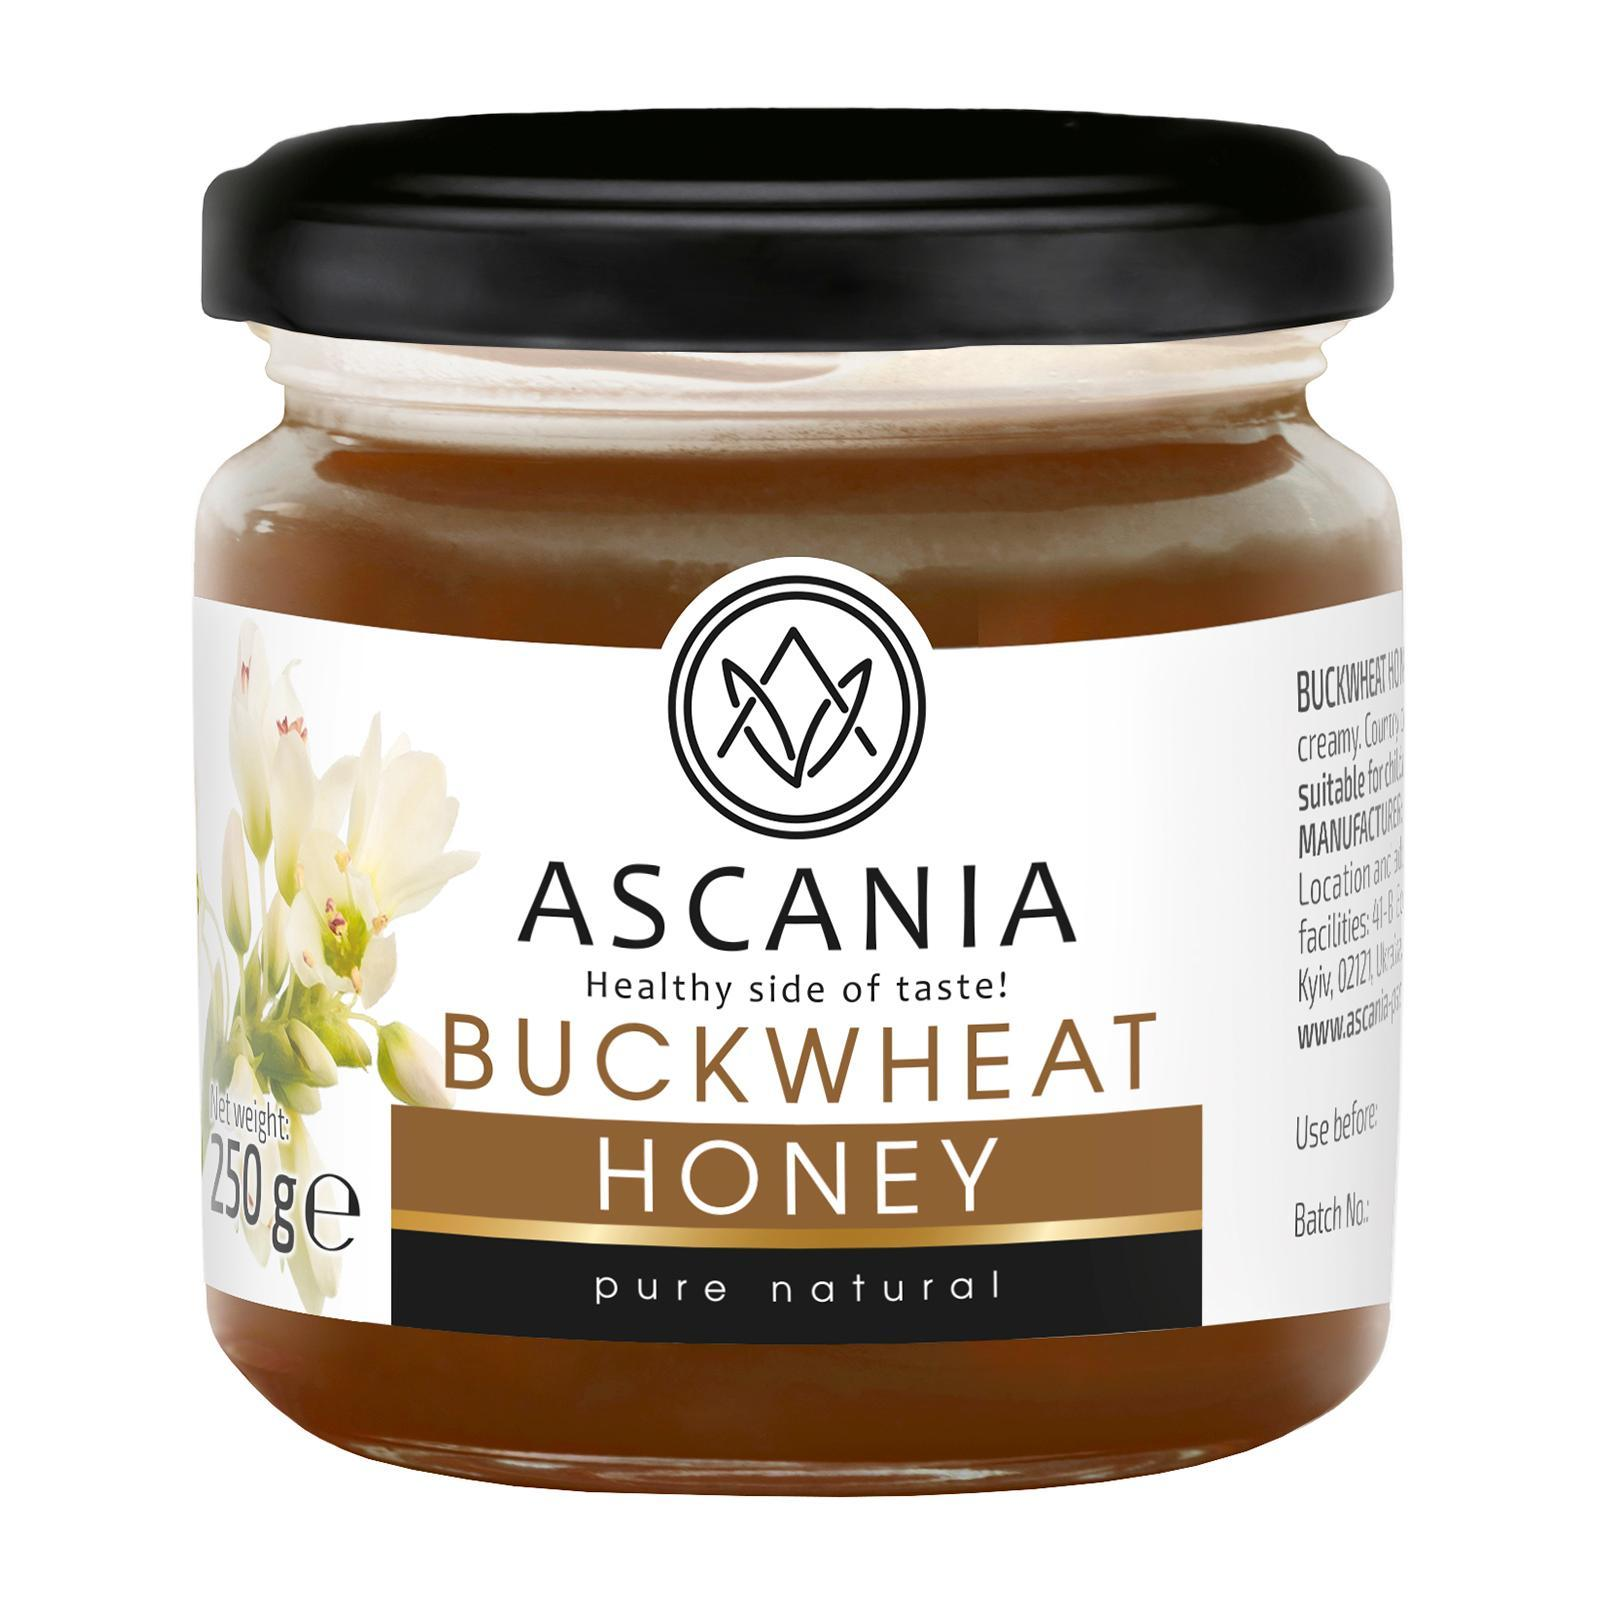 Ascania Buckwheat Honey